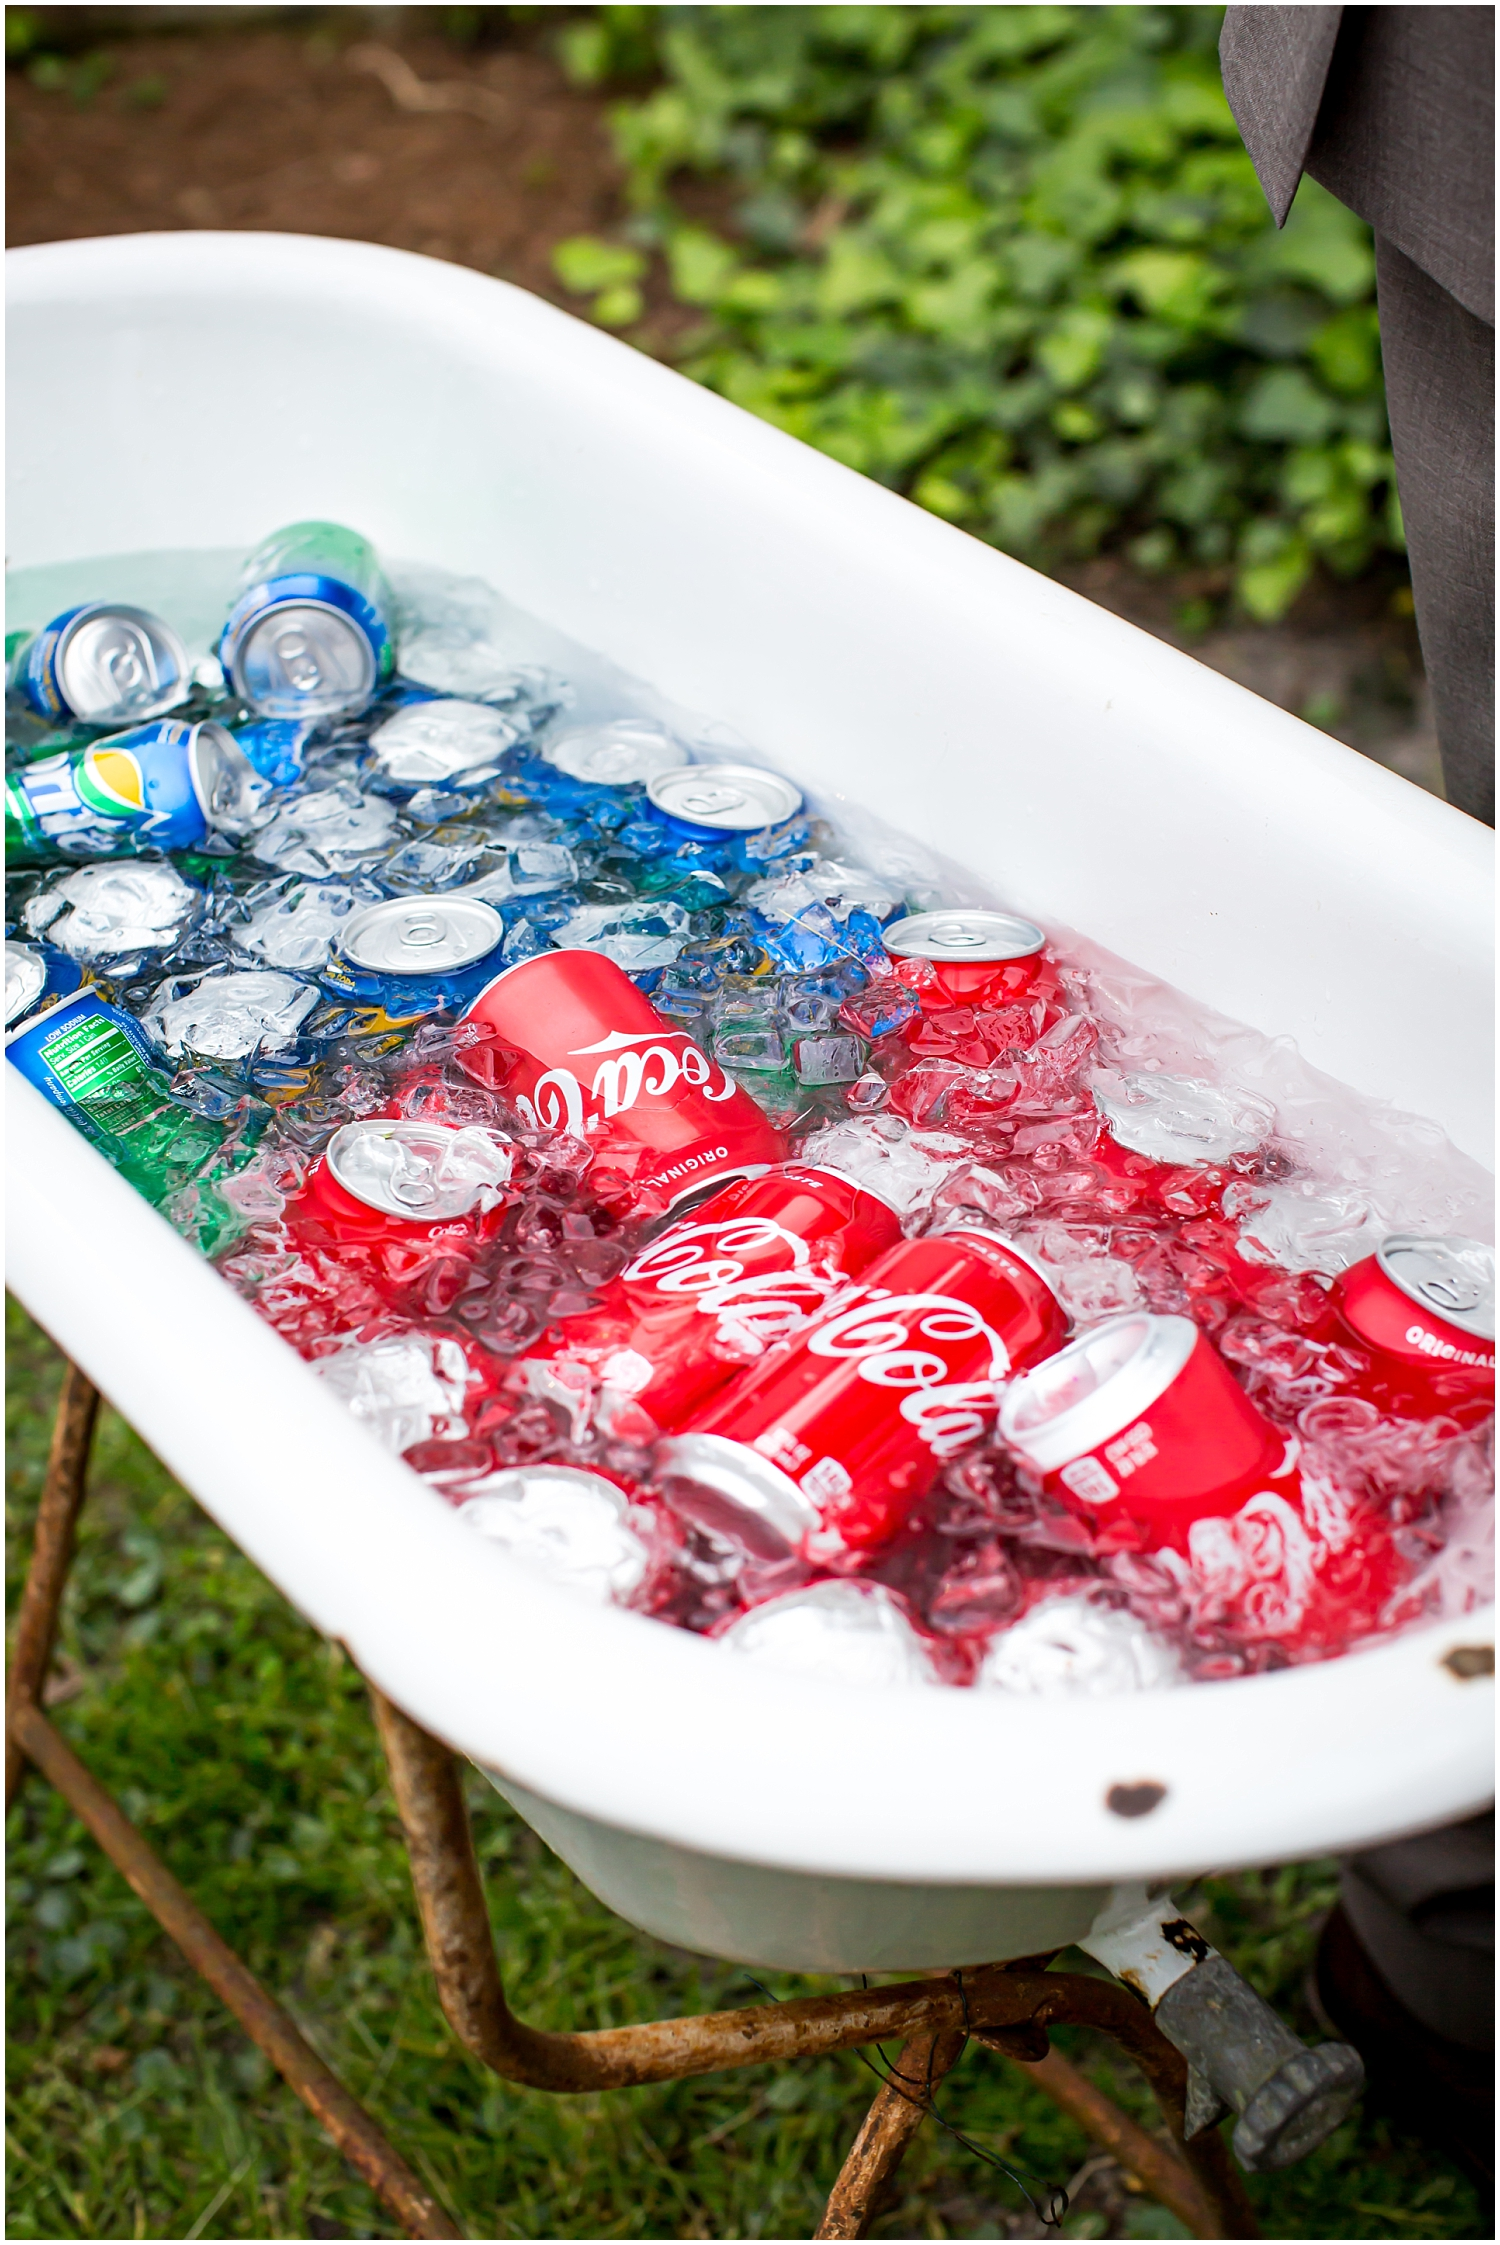 bath tub filled with soda cans